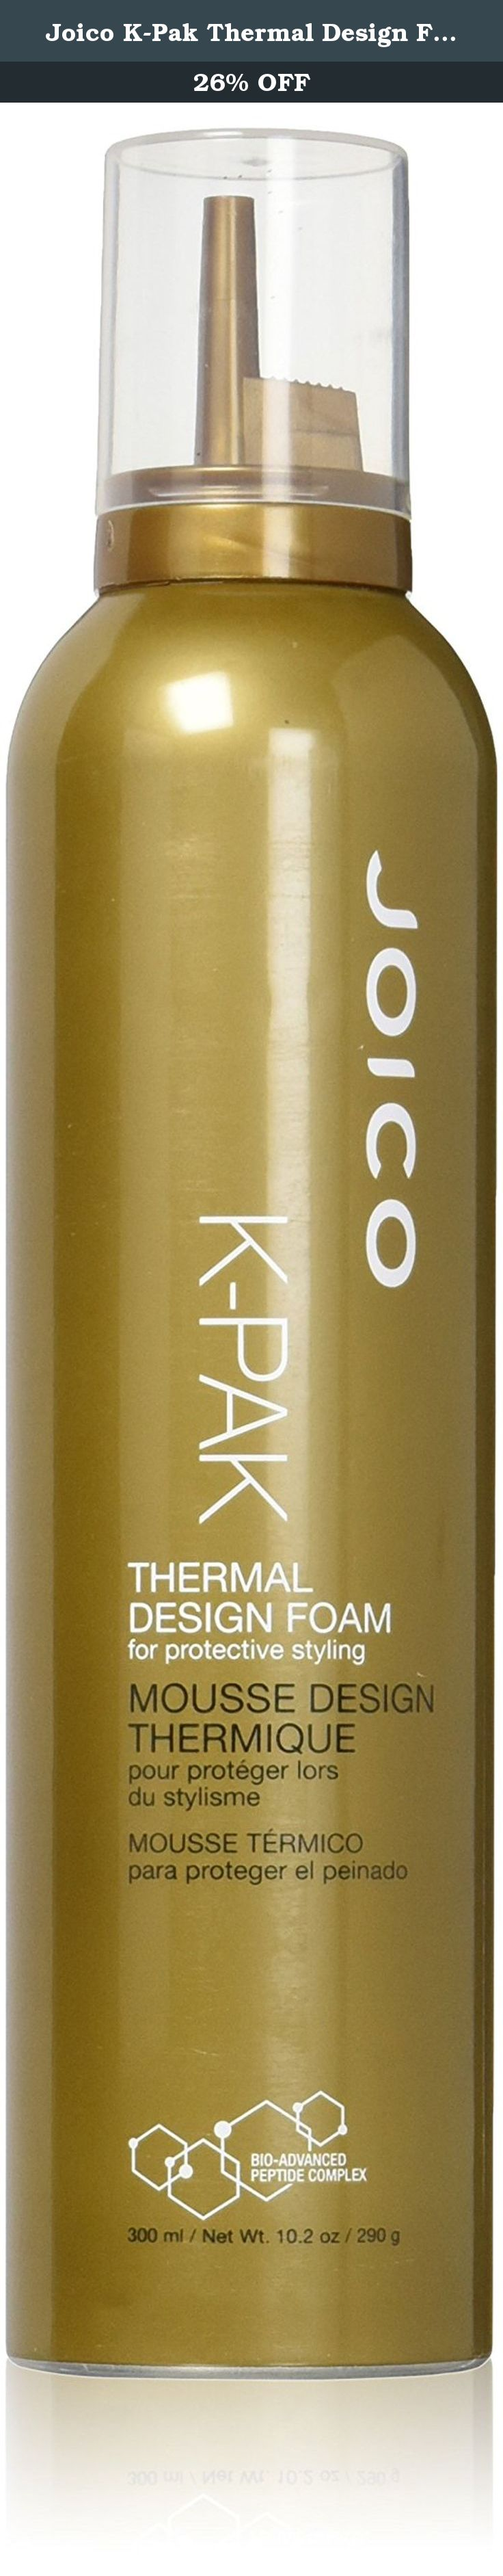 Joico K Pak Thermal Design Foam 102 Ounce Apply A Golf Ball Sized